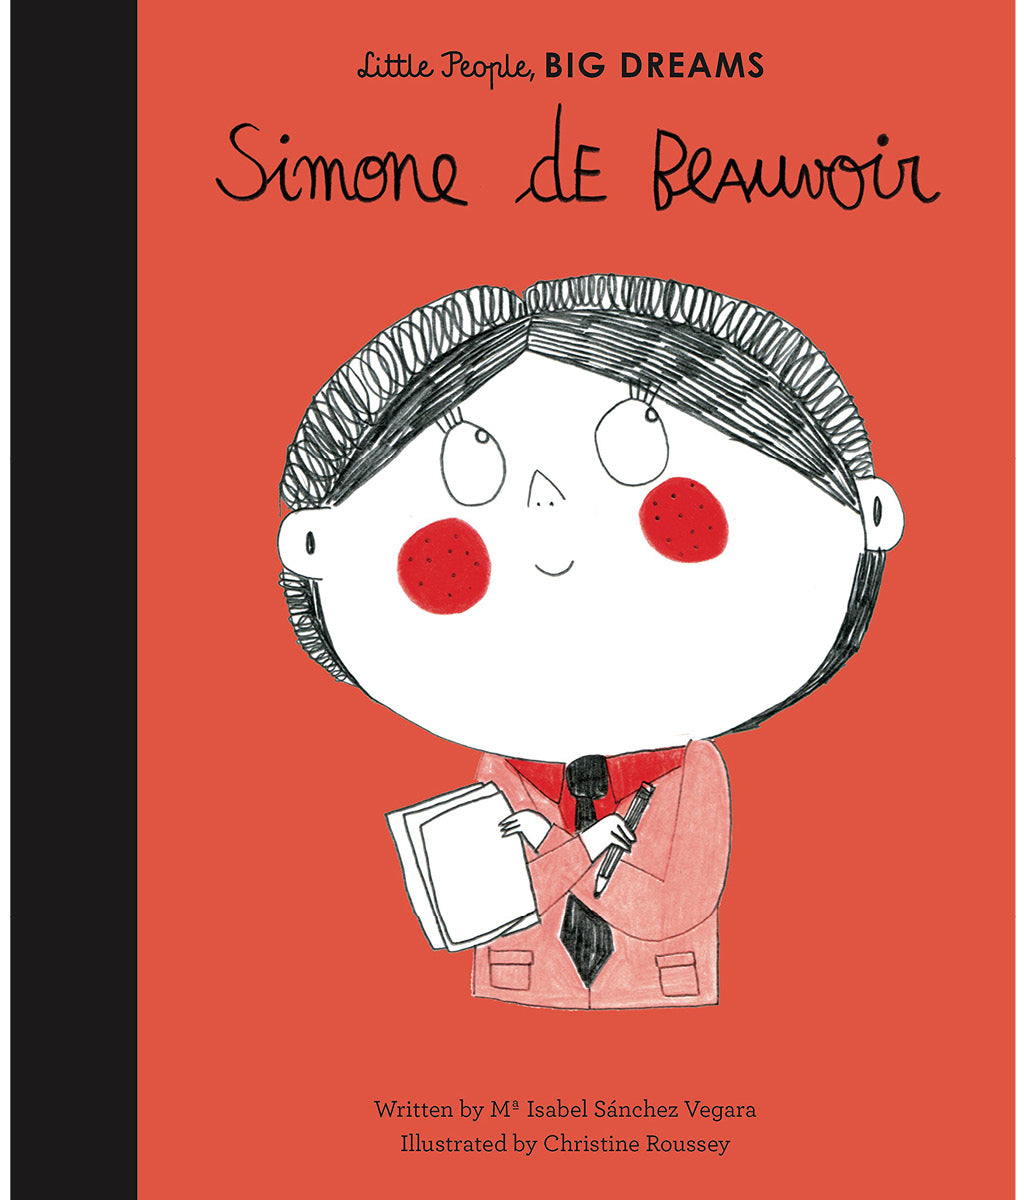 Simone de Beauvoir by Maria Isabel Sanchez Vegara